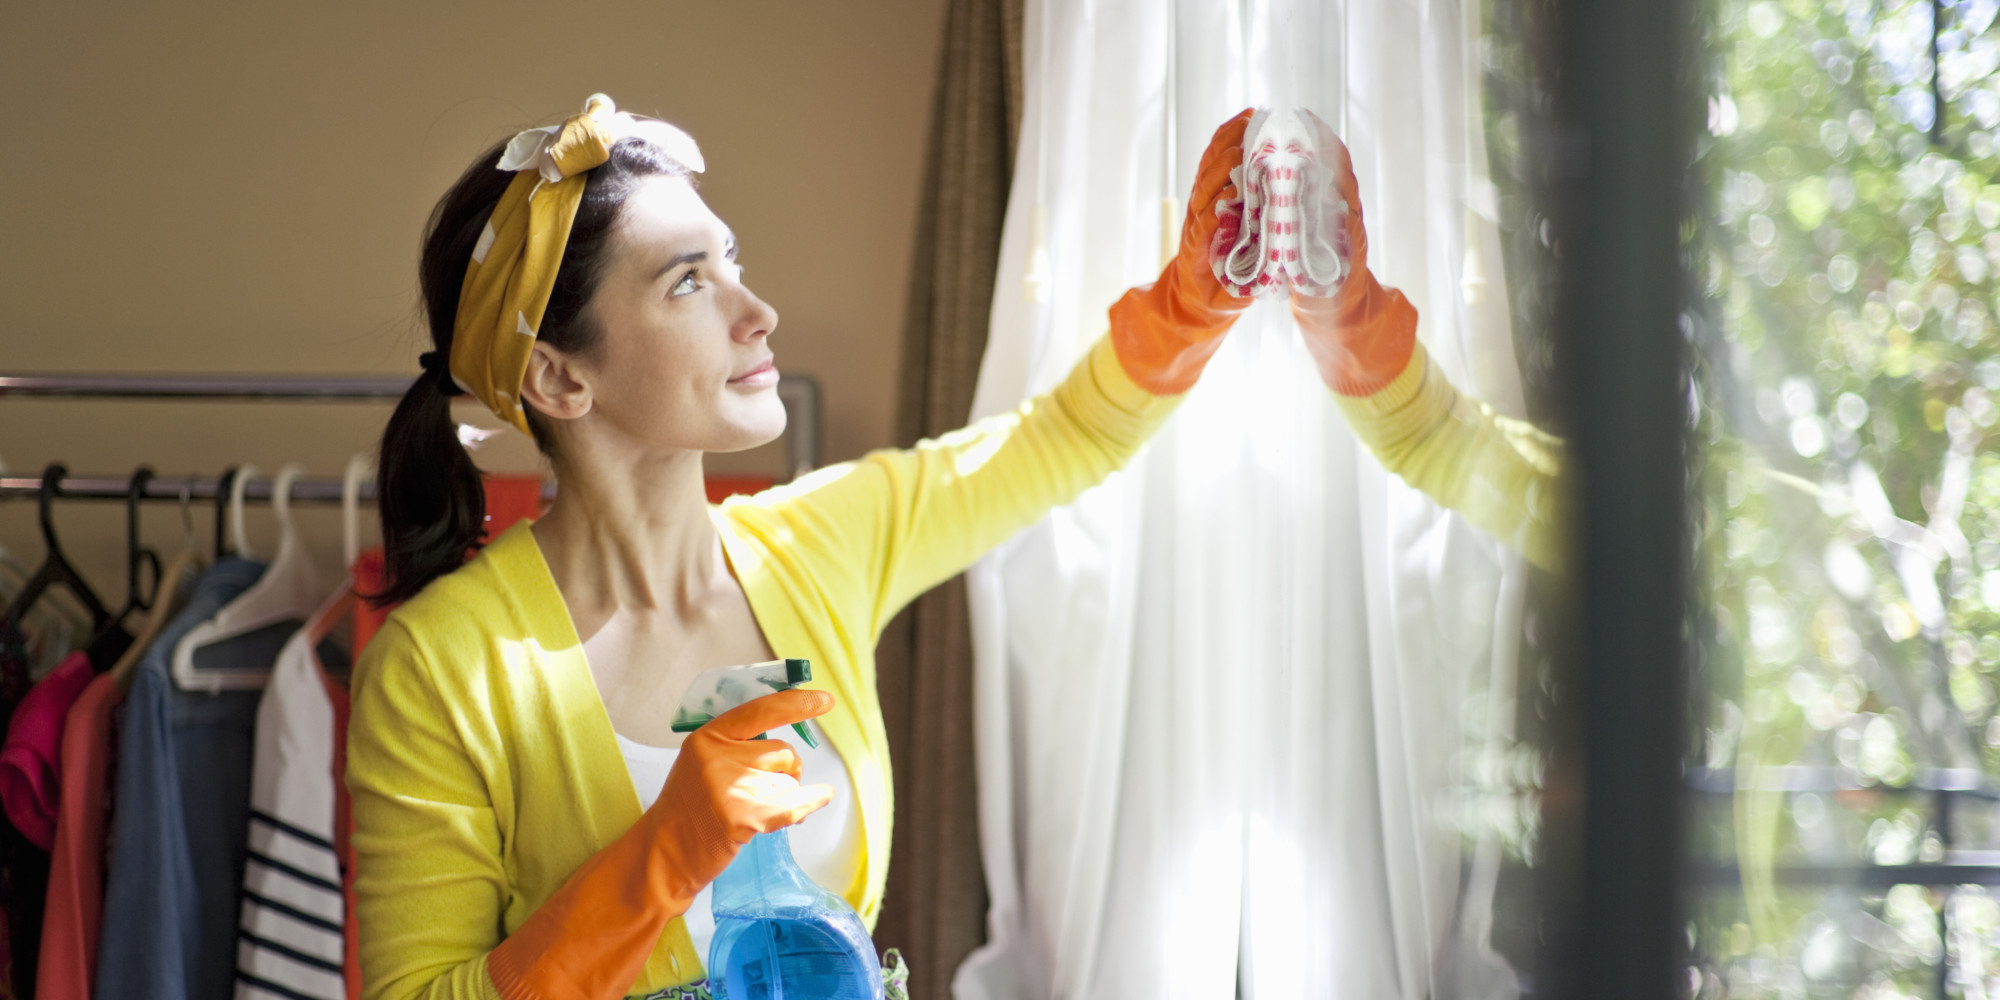 Top 10 Spring Cleaning Tips Huffpost Uk: cleaning tips for the home uk